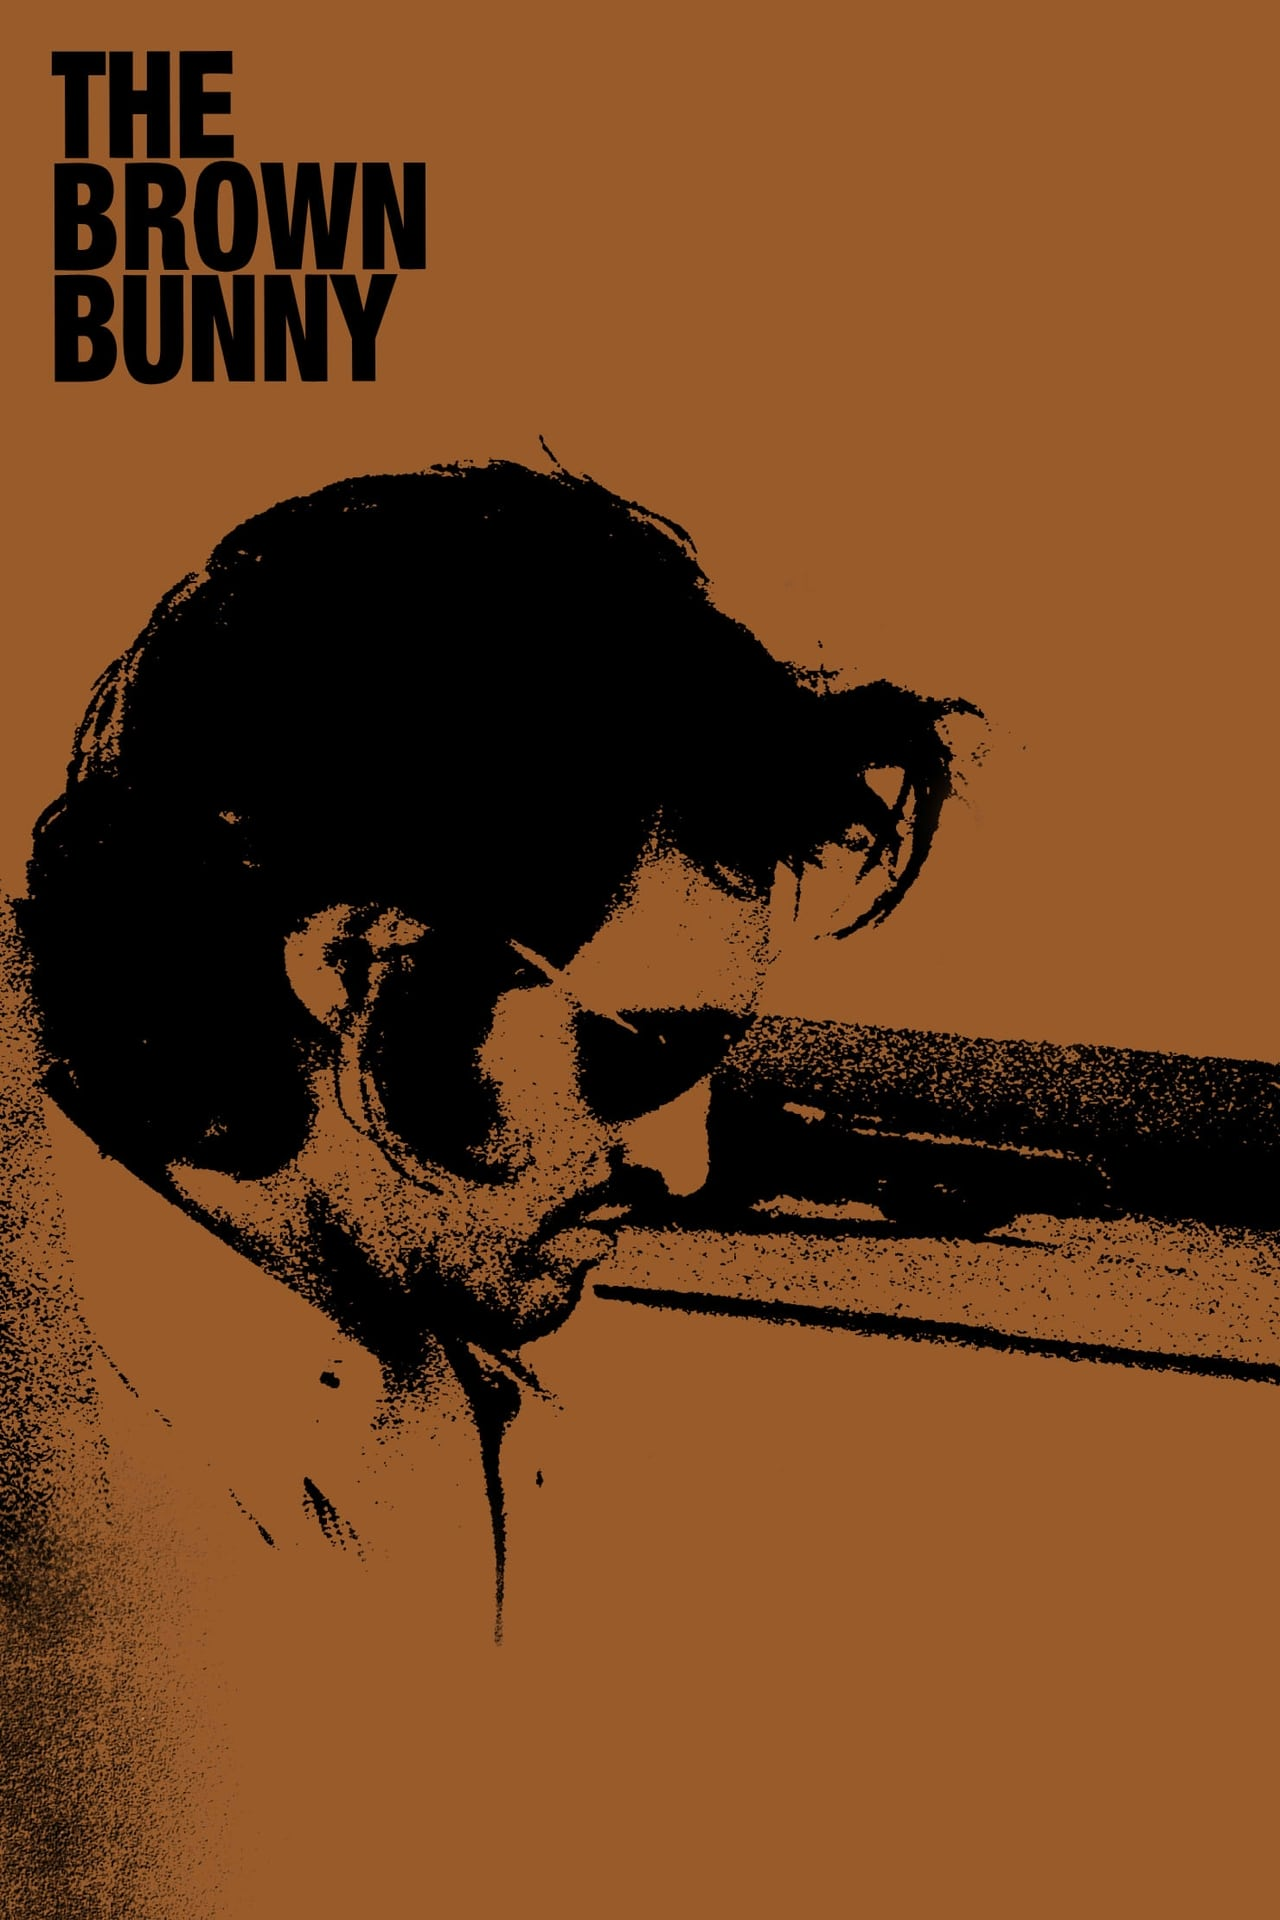 The brown bunny video